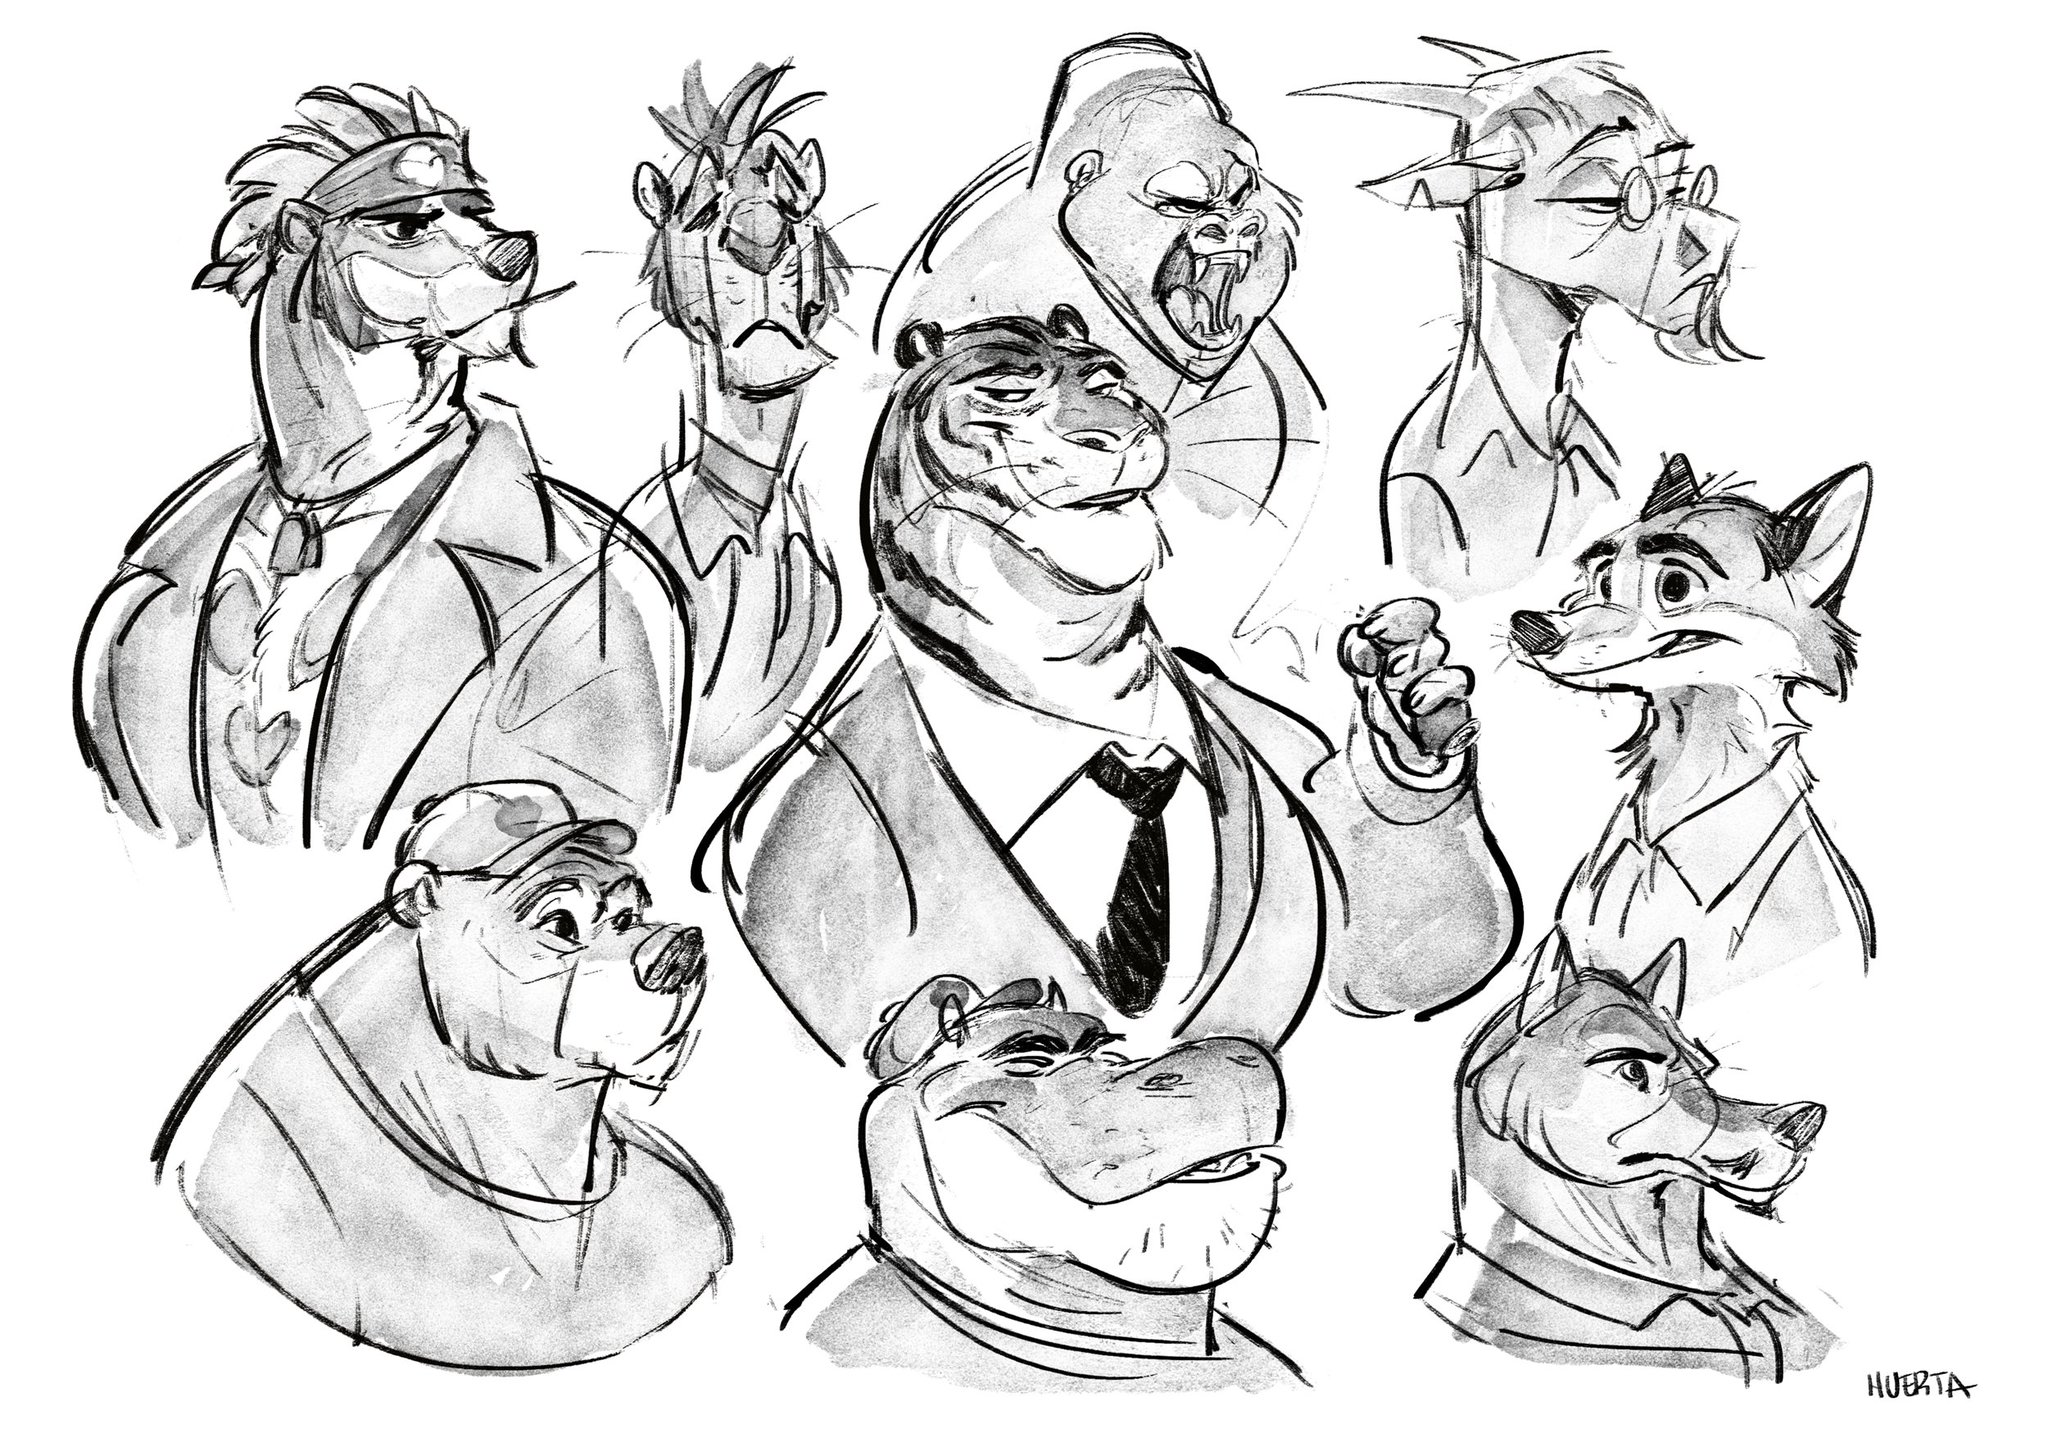 A bunch of crappy animal drawings trying to get inspiration again. #sketch https://t.co/ezxaTIGgq7